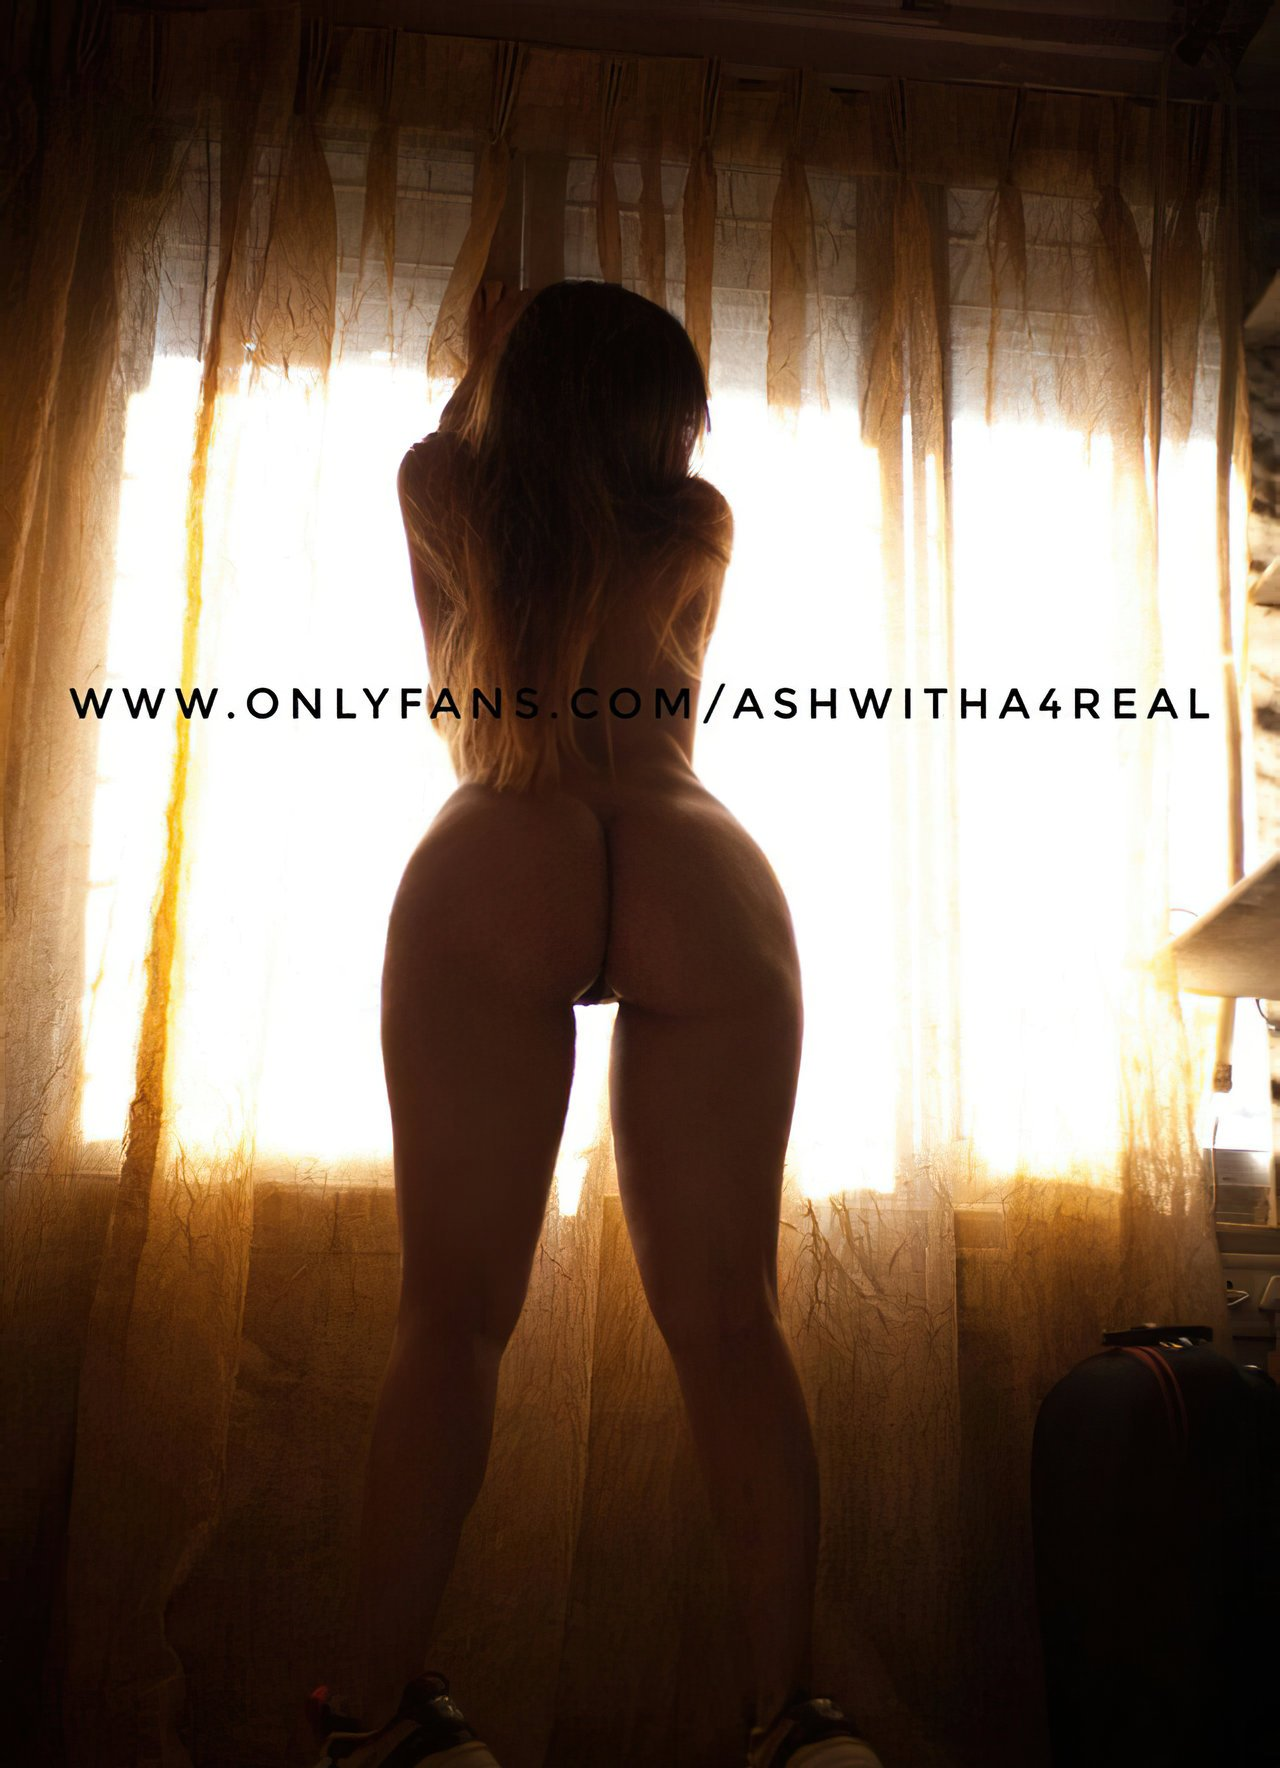 Ashwitha Ashwitha4real Onlyfans Nude Leaks 0014